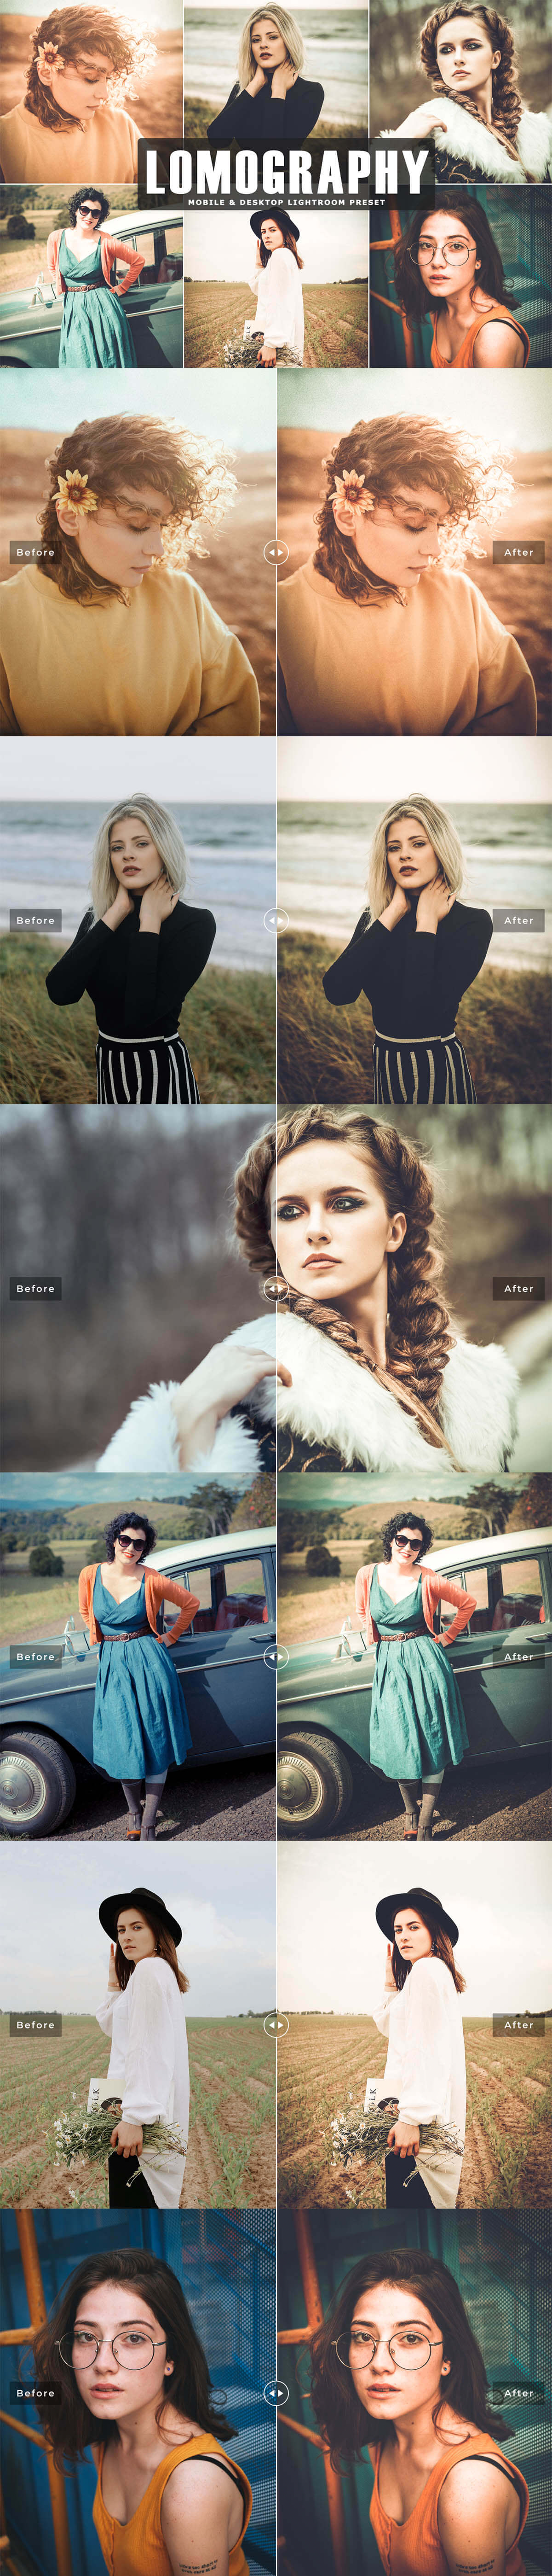 Free Lomography Lightroom Preset